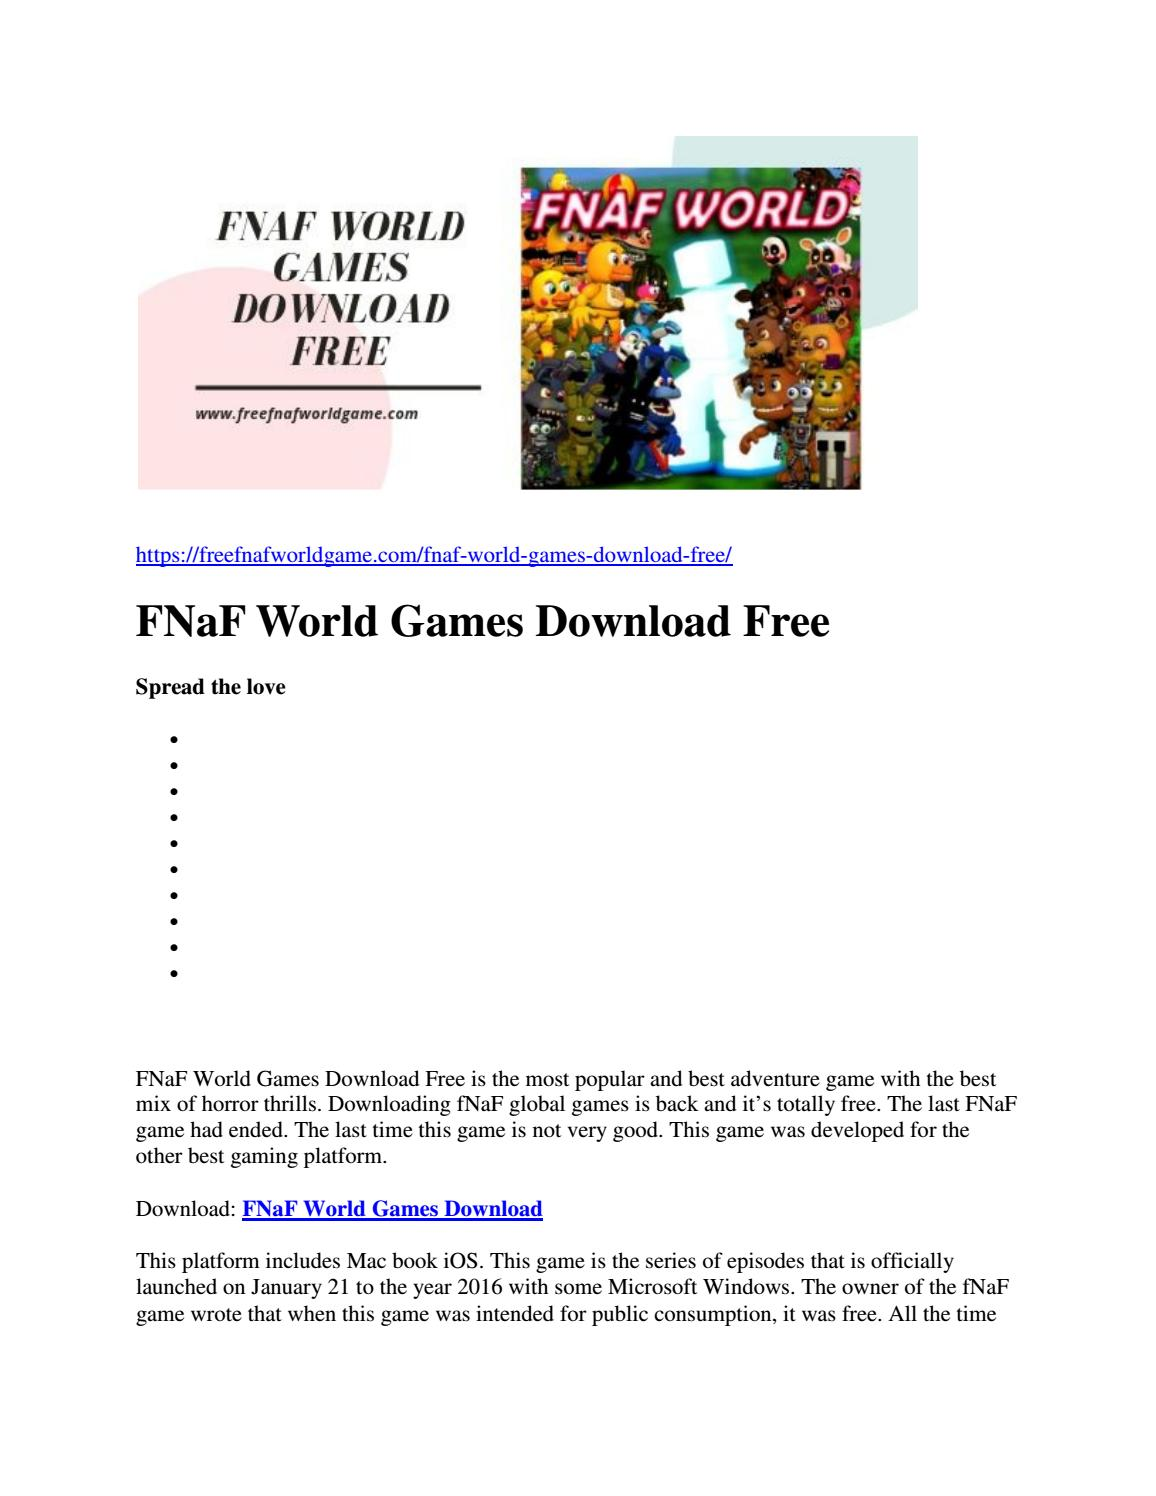 FNaF World Games Download Free by Jannat Raza - issuu